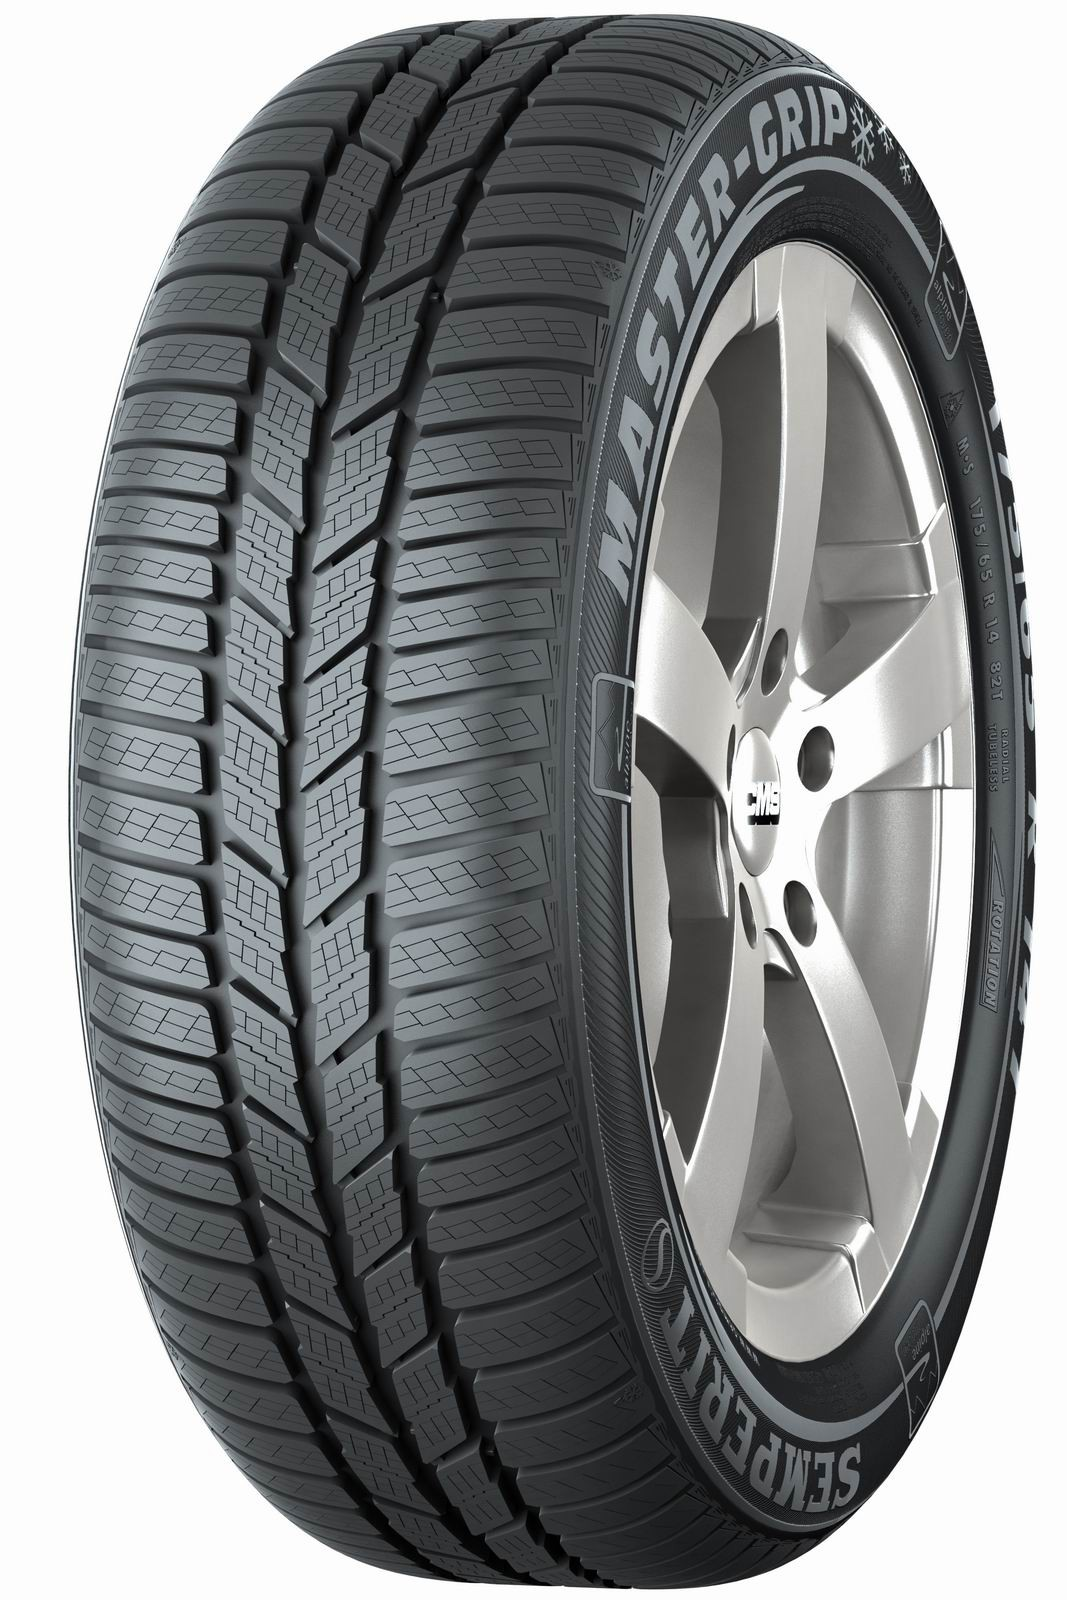 165/80R13 83T, Semperit, MASTER-GRIP